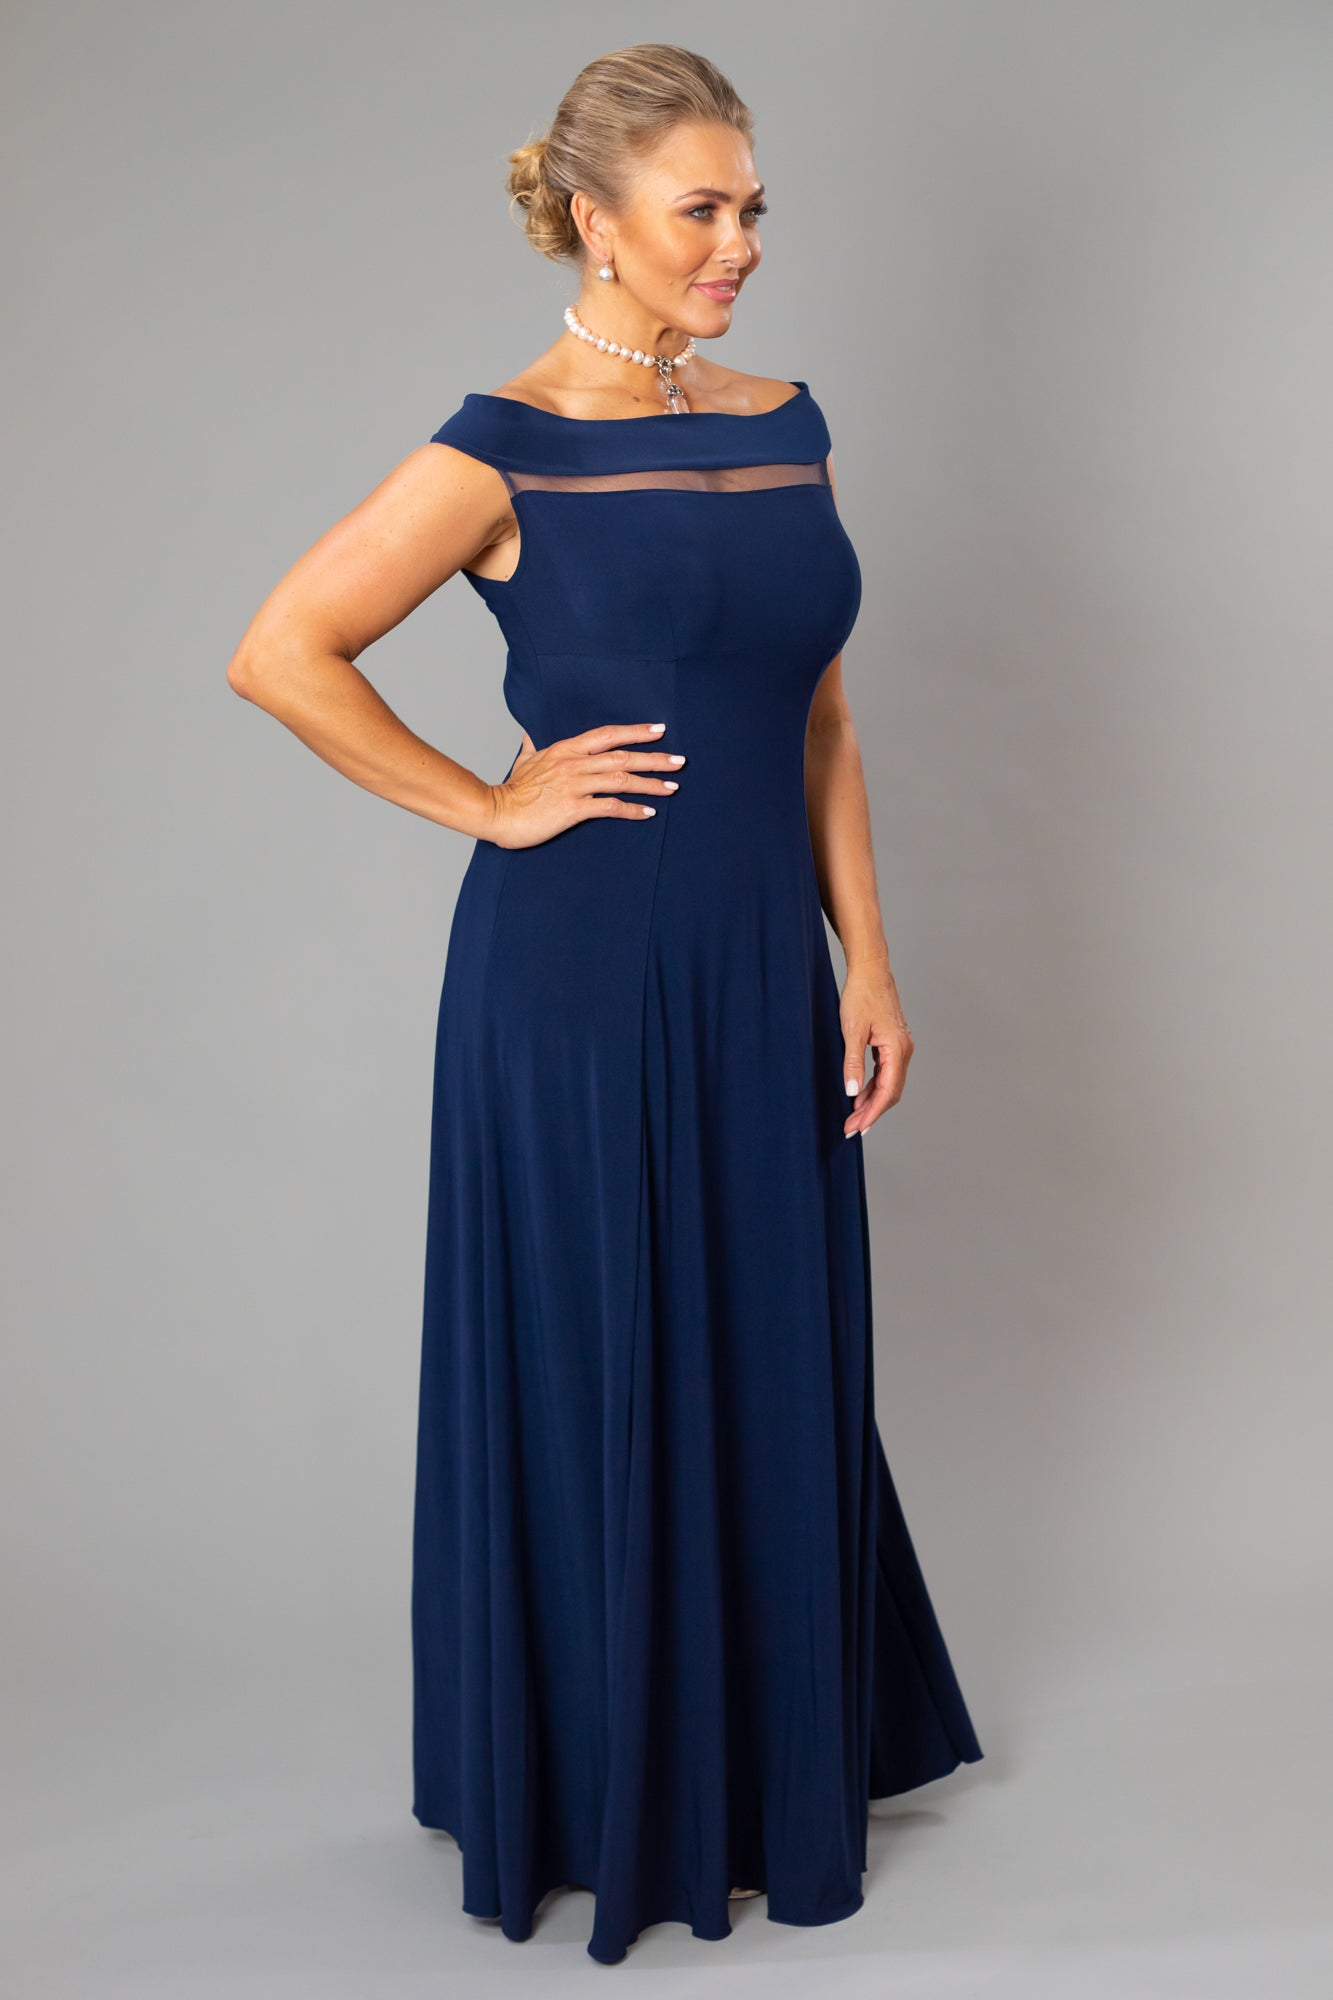 Navy Blue Floor Length Off the Shoulder Gown for the Mother of the Bride / Groom